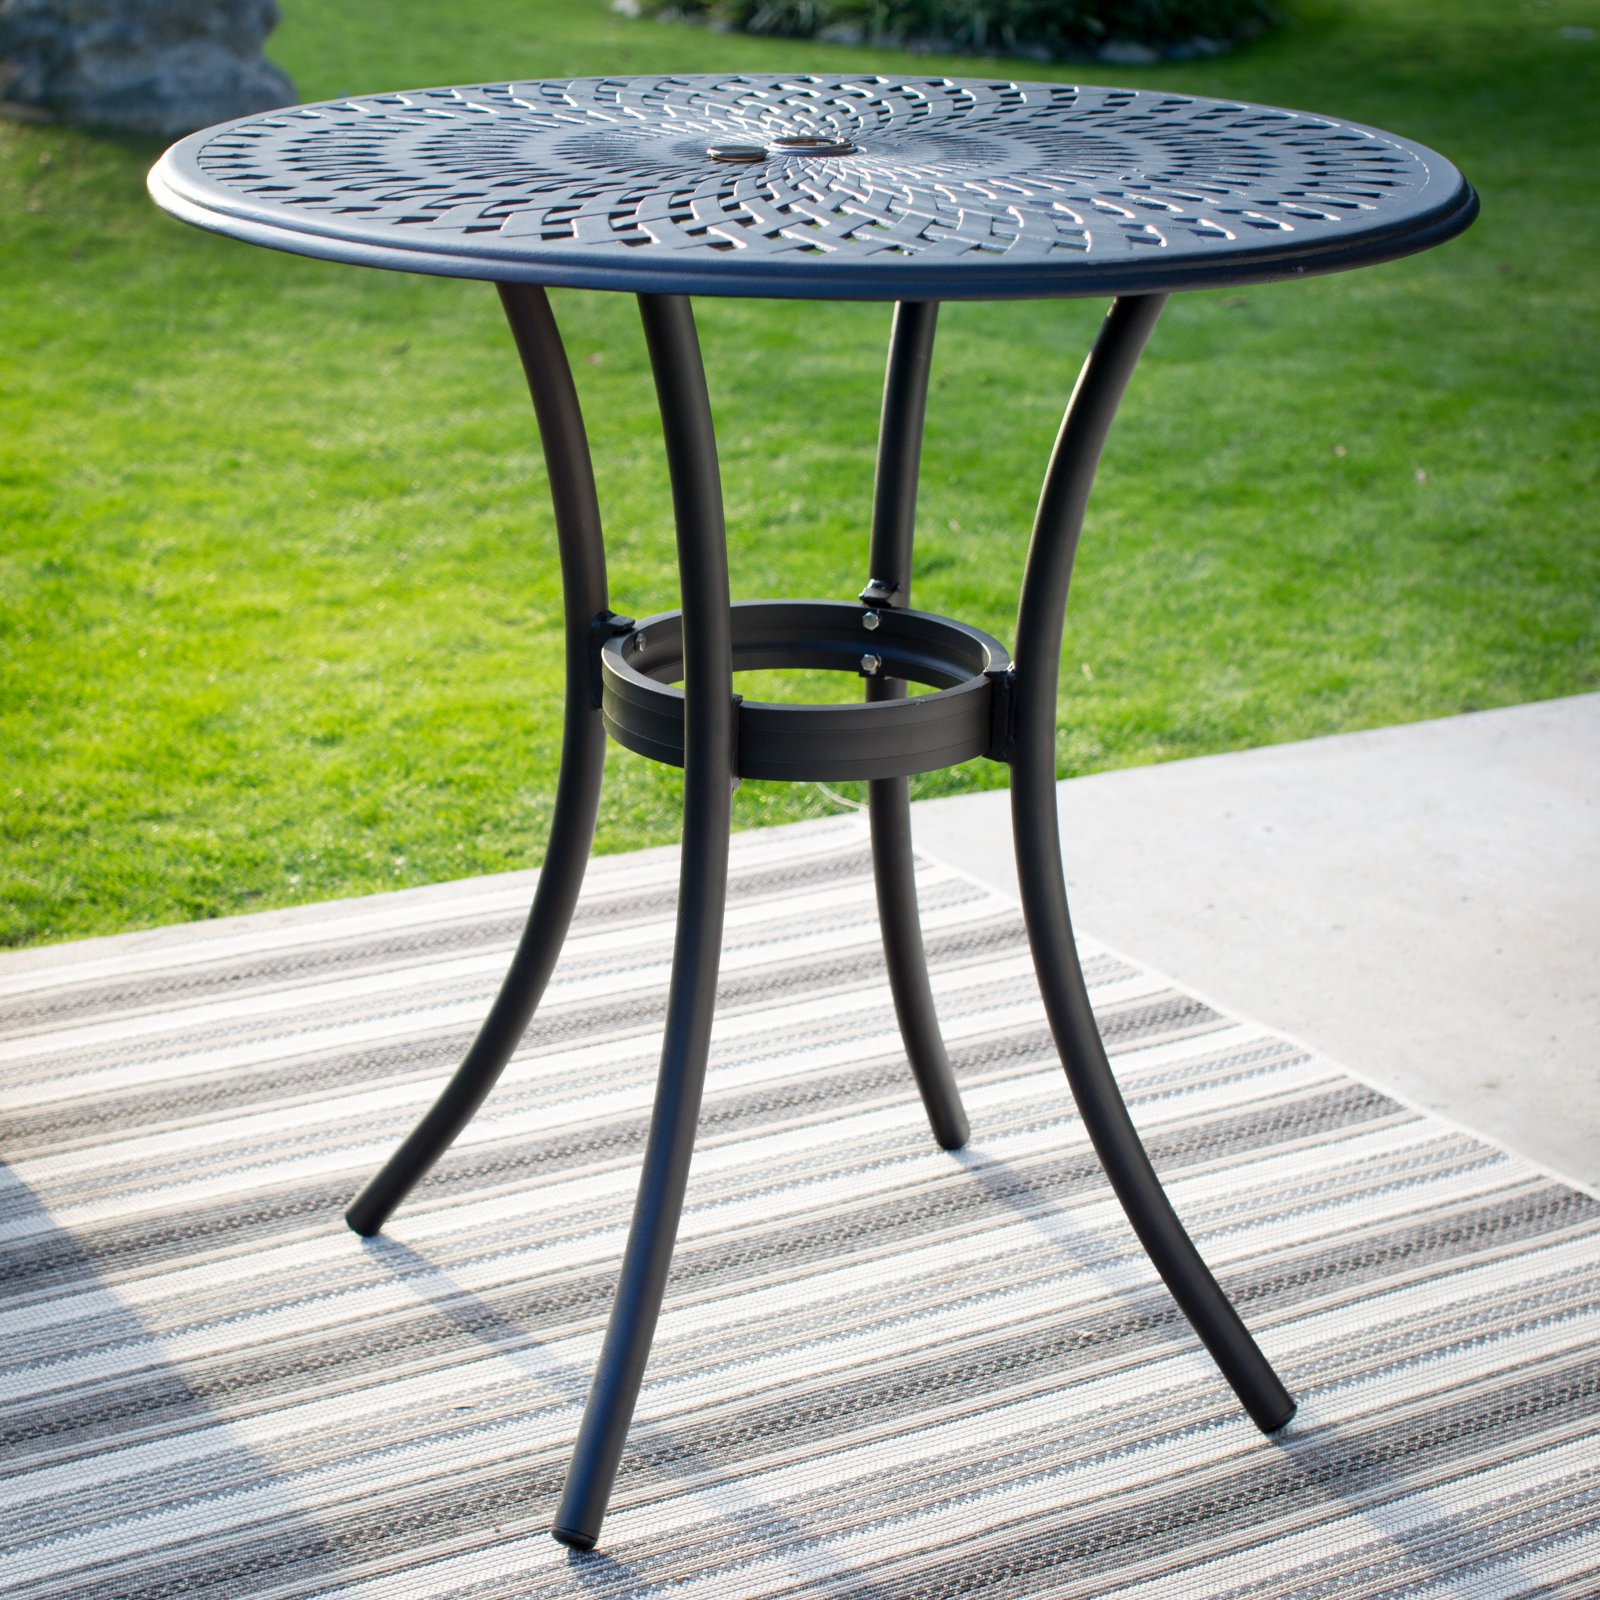 Belham Living Sorrento Aluminum 42 in. Round Patio Bar Height Table